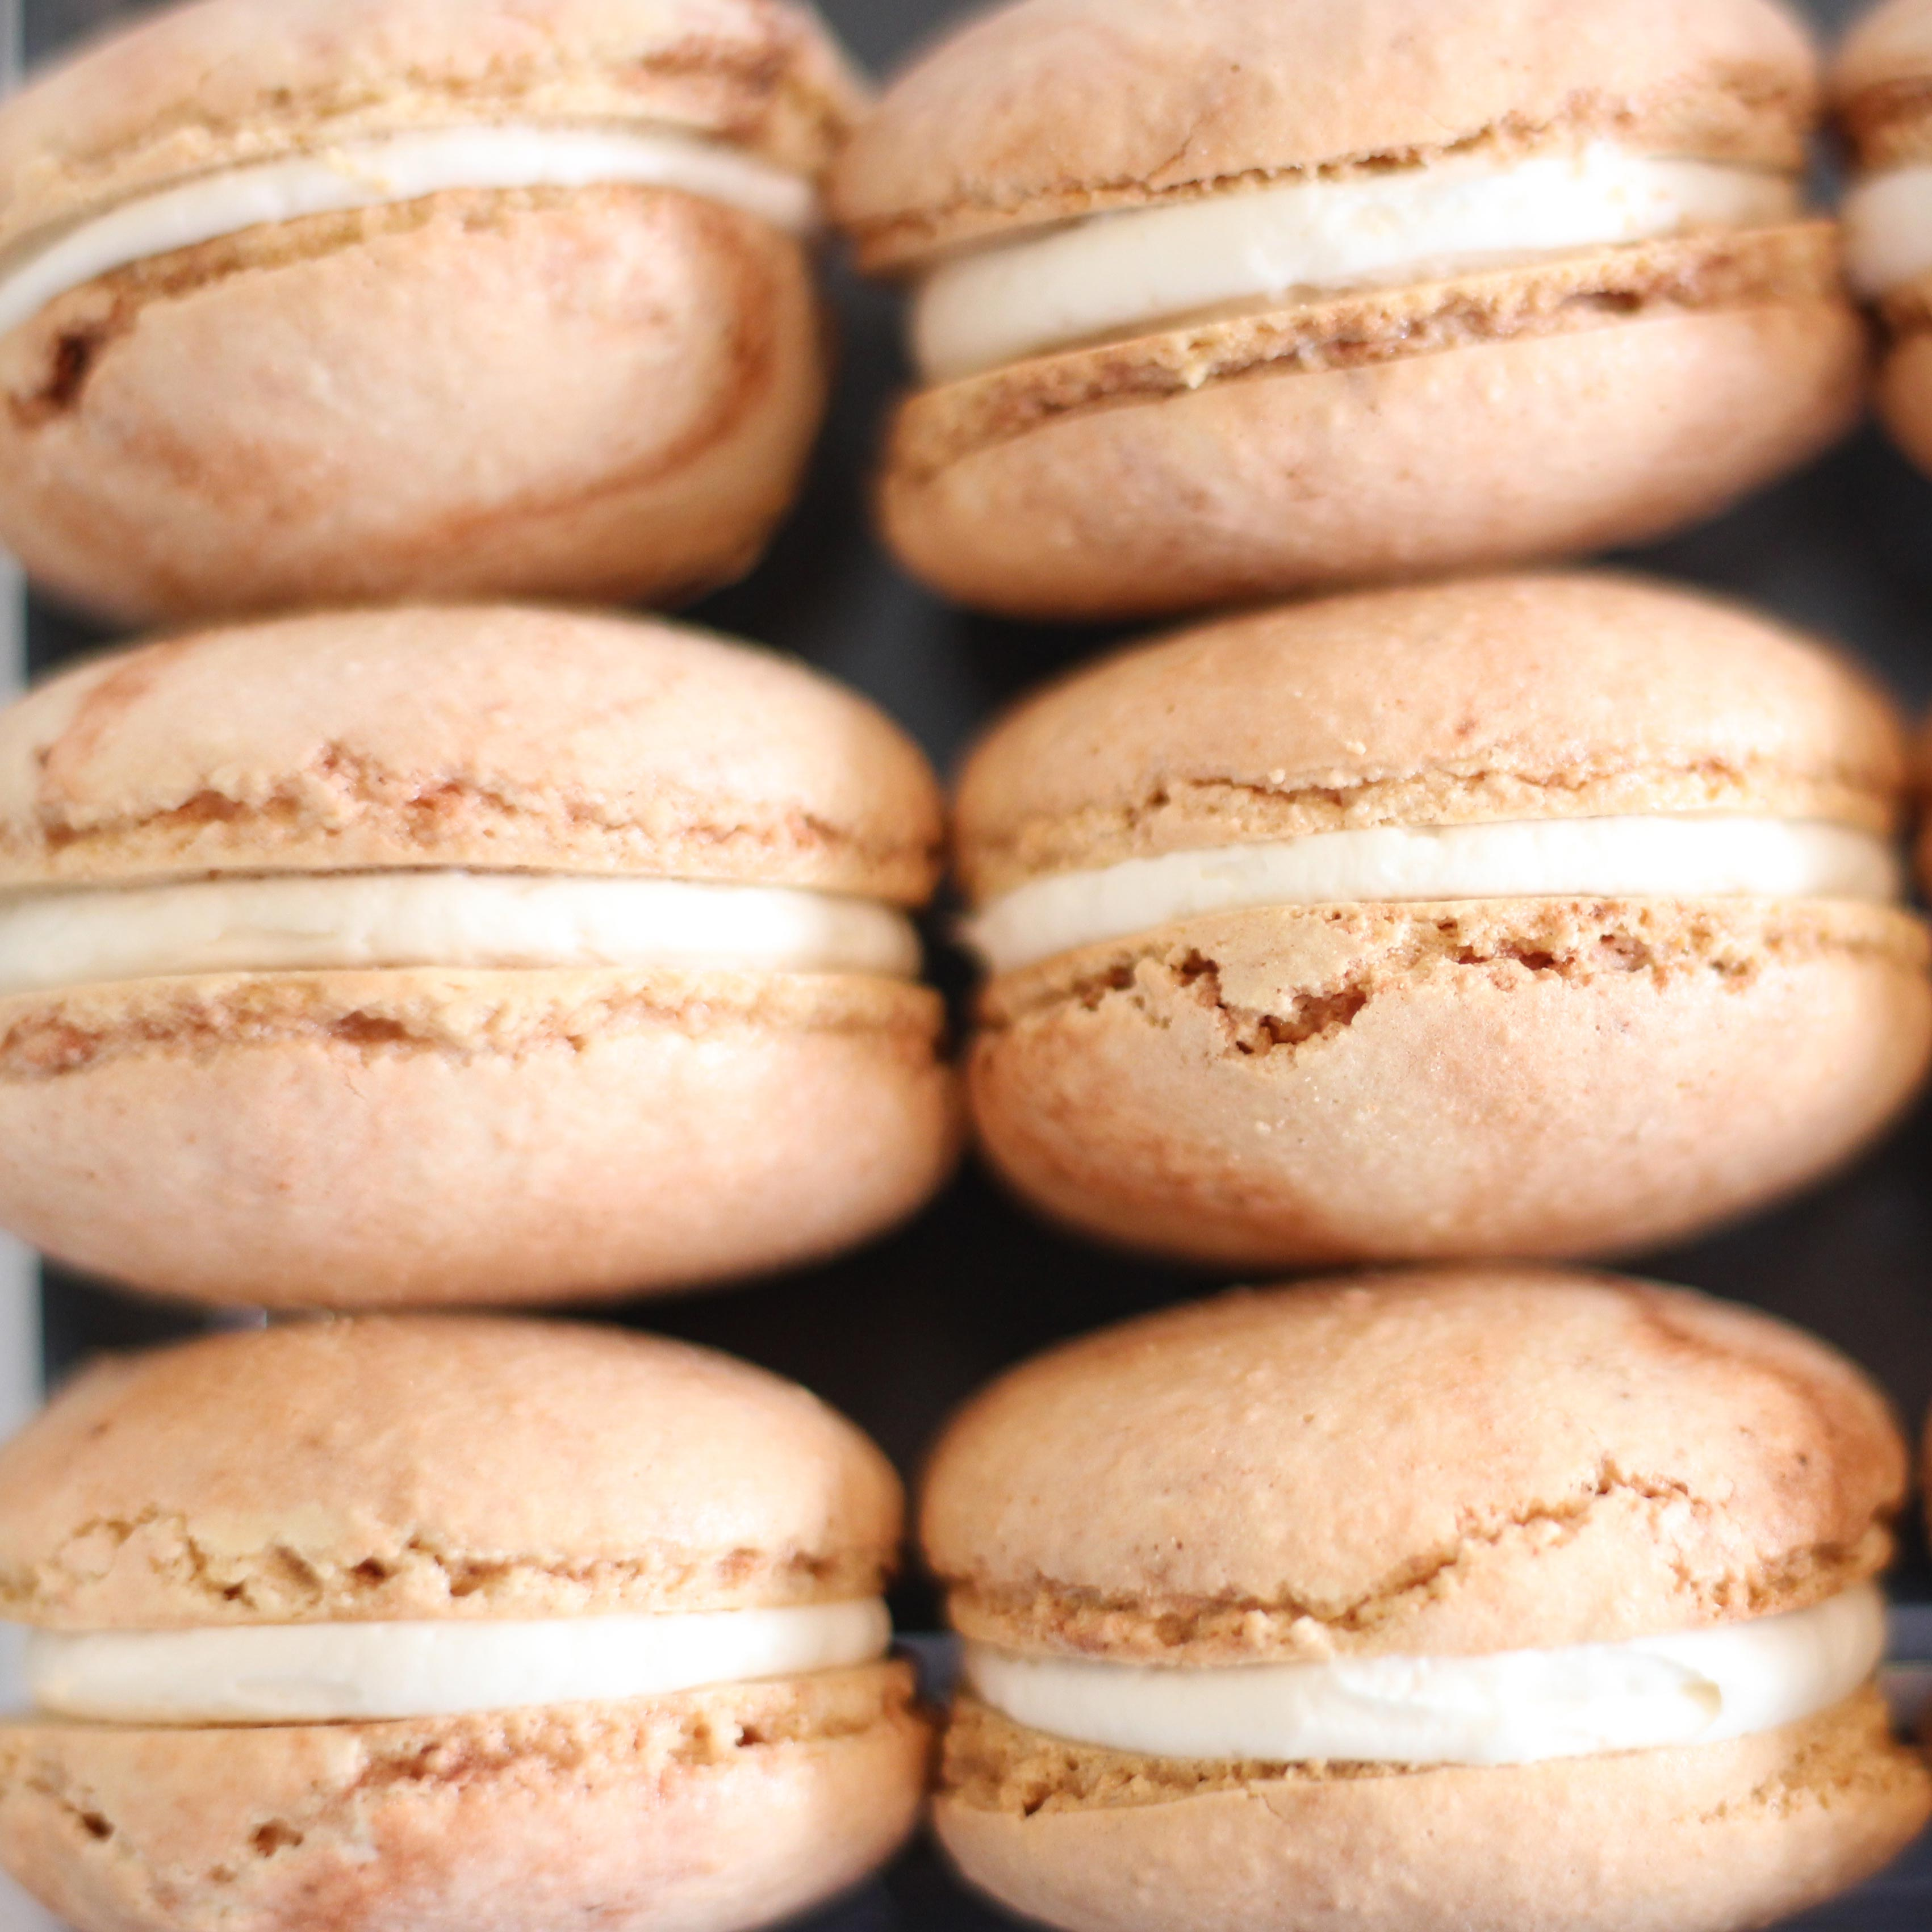 Macarons By Gourmet Bakery In Northern New Jersey